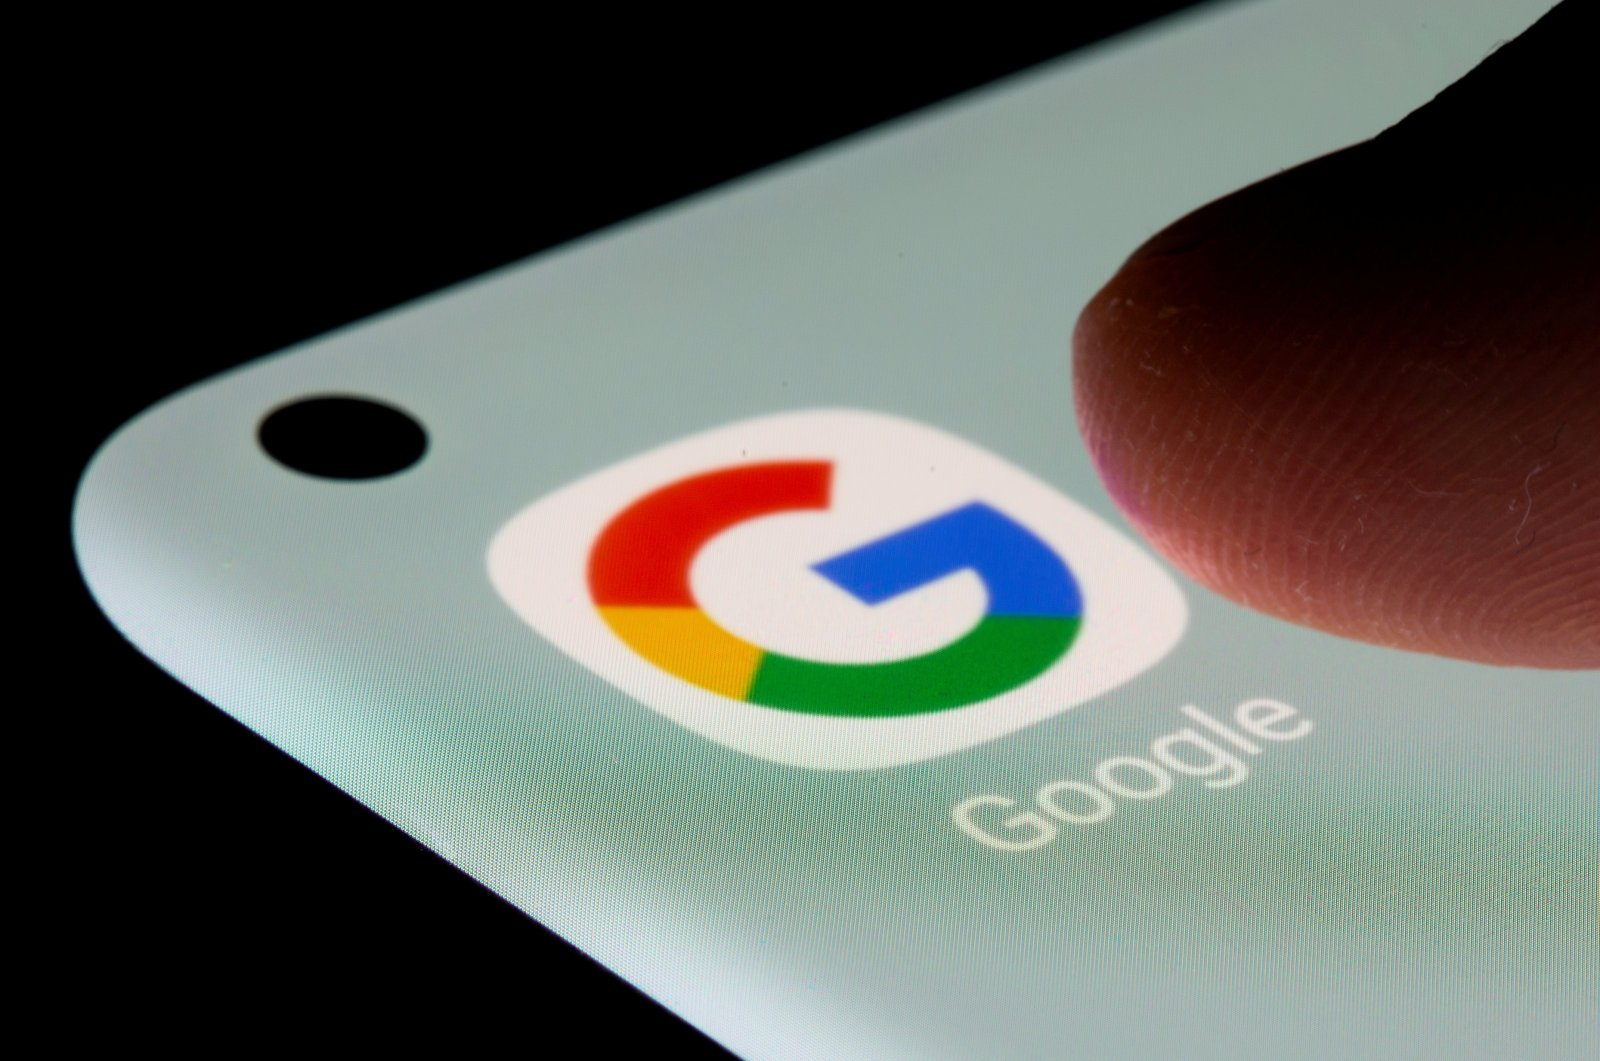 The Google app is seen on a smartphone in this illustration taken on July 13, 2021. (Reuters Photo)